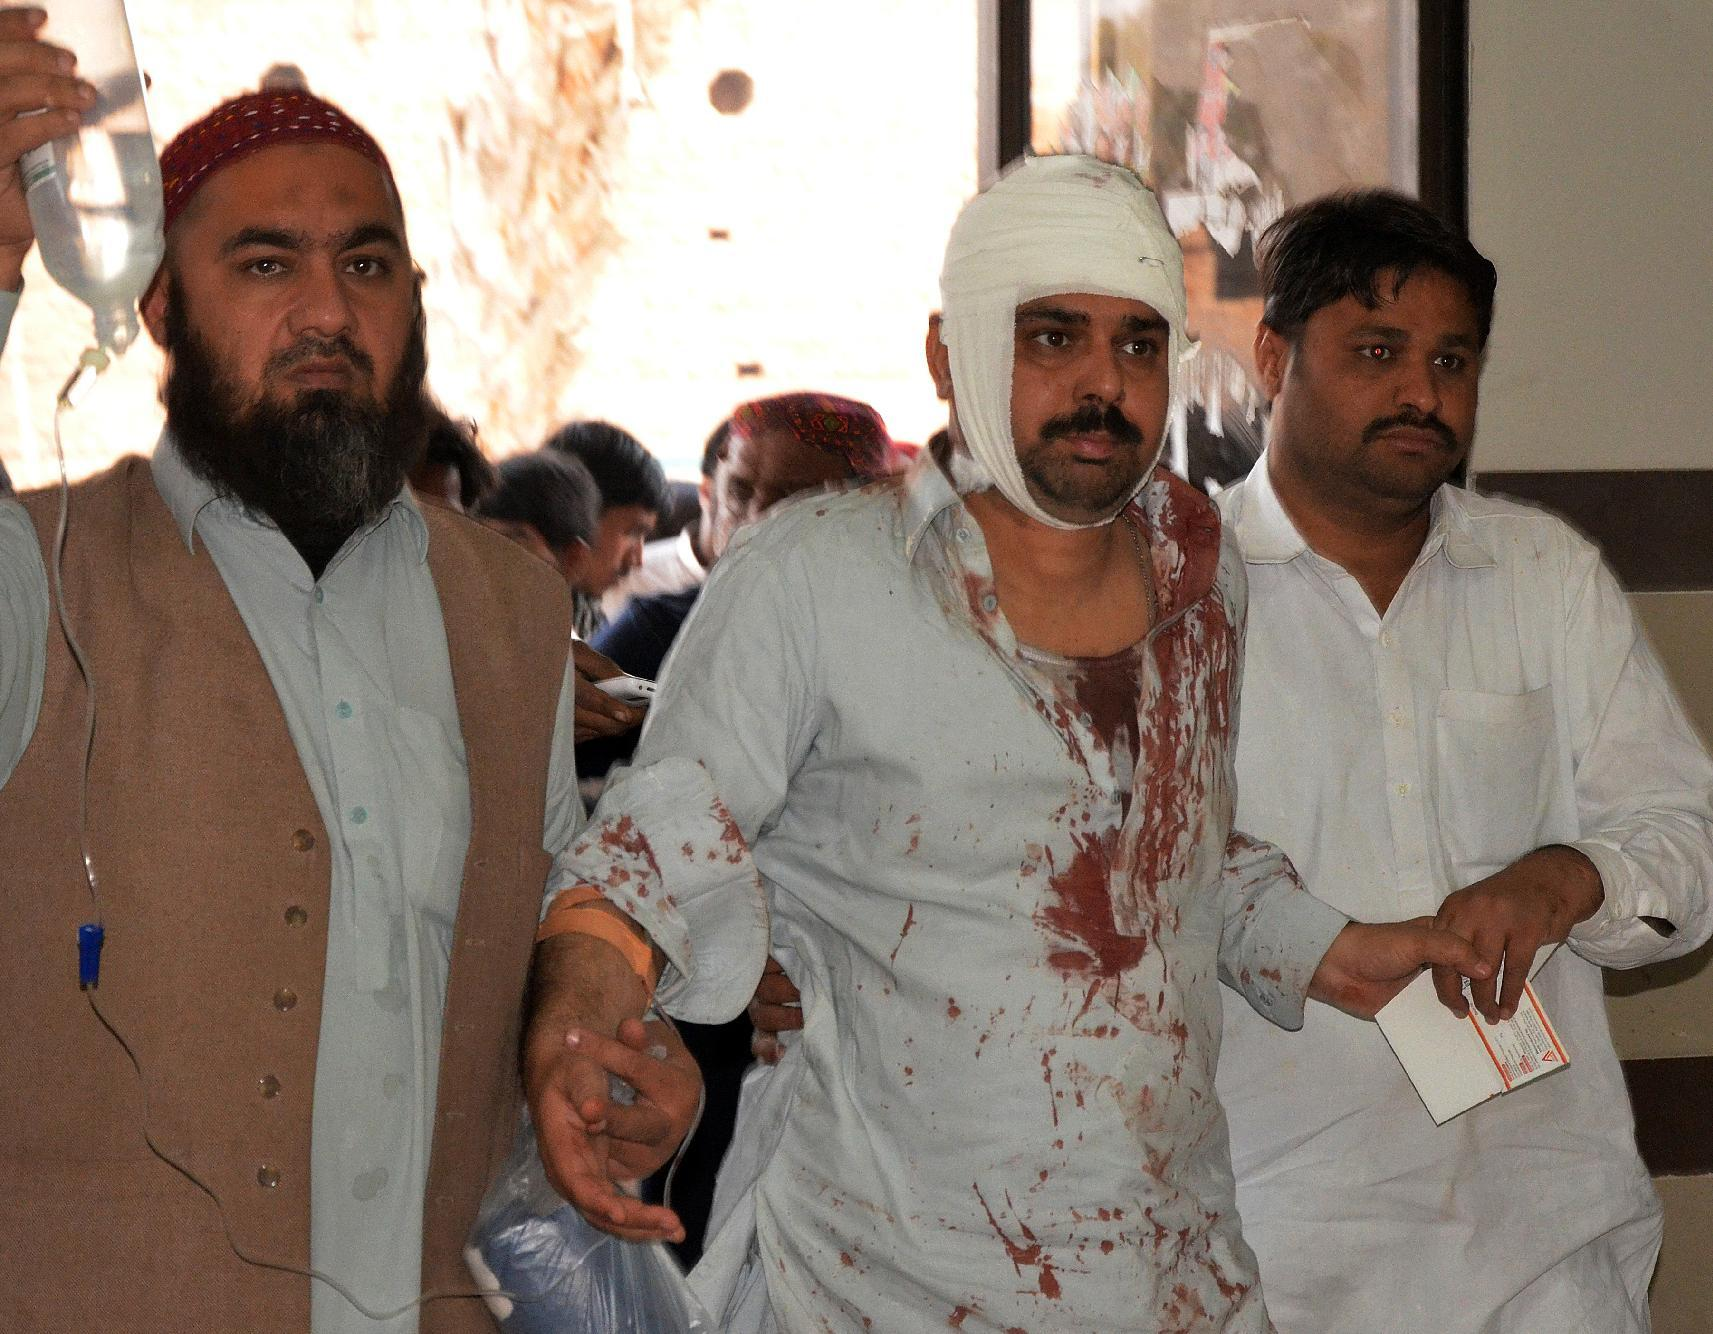 Bomb attack at Pakistani mosque kills over 60